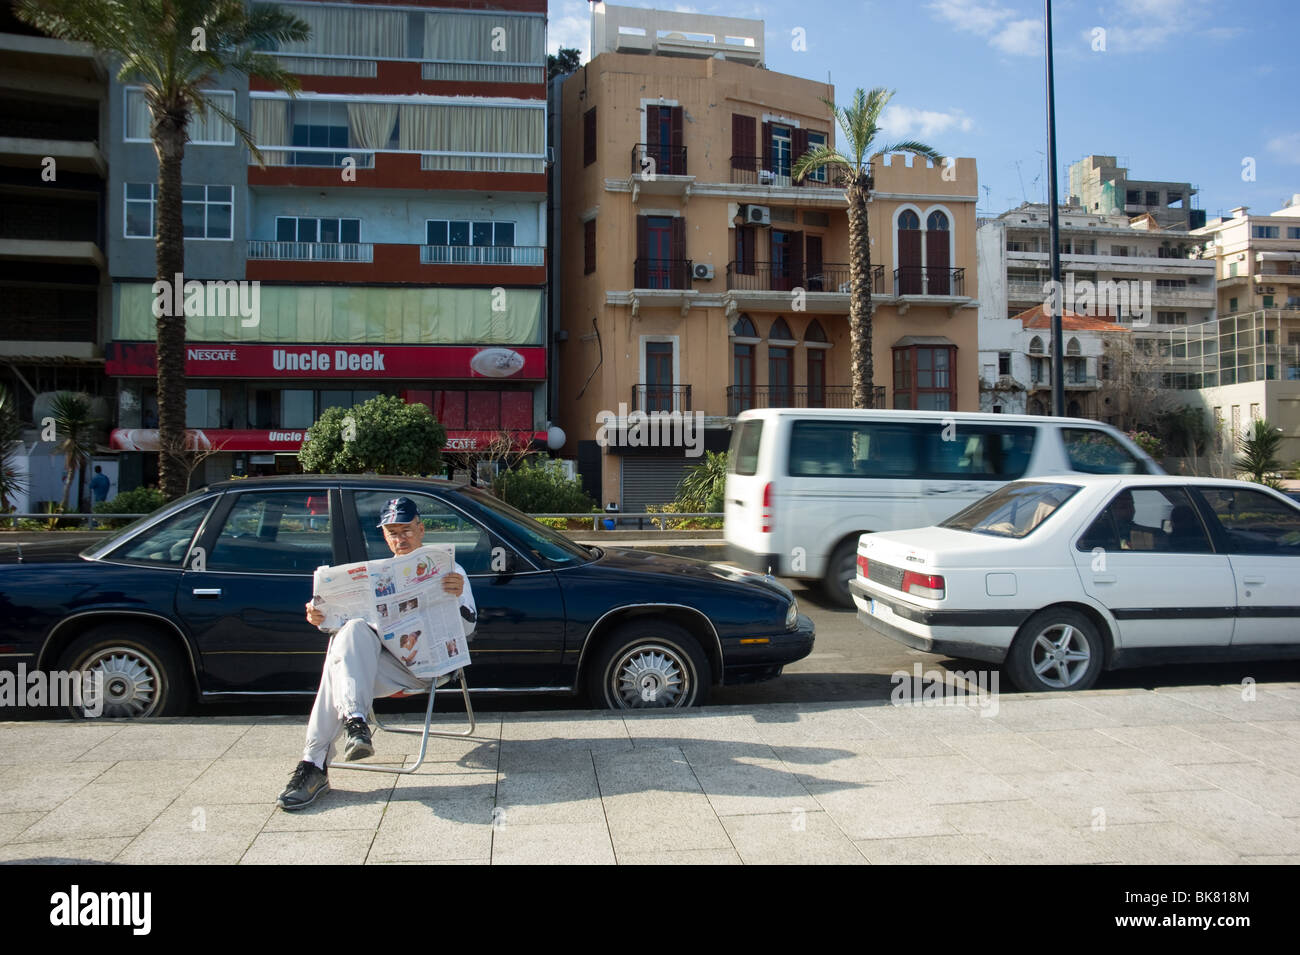 A resident of Beirut read the latest news on the cornice of Beirut Lebanon - Stock Image